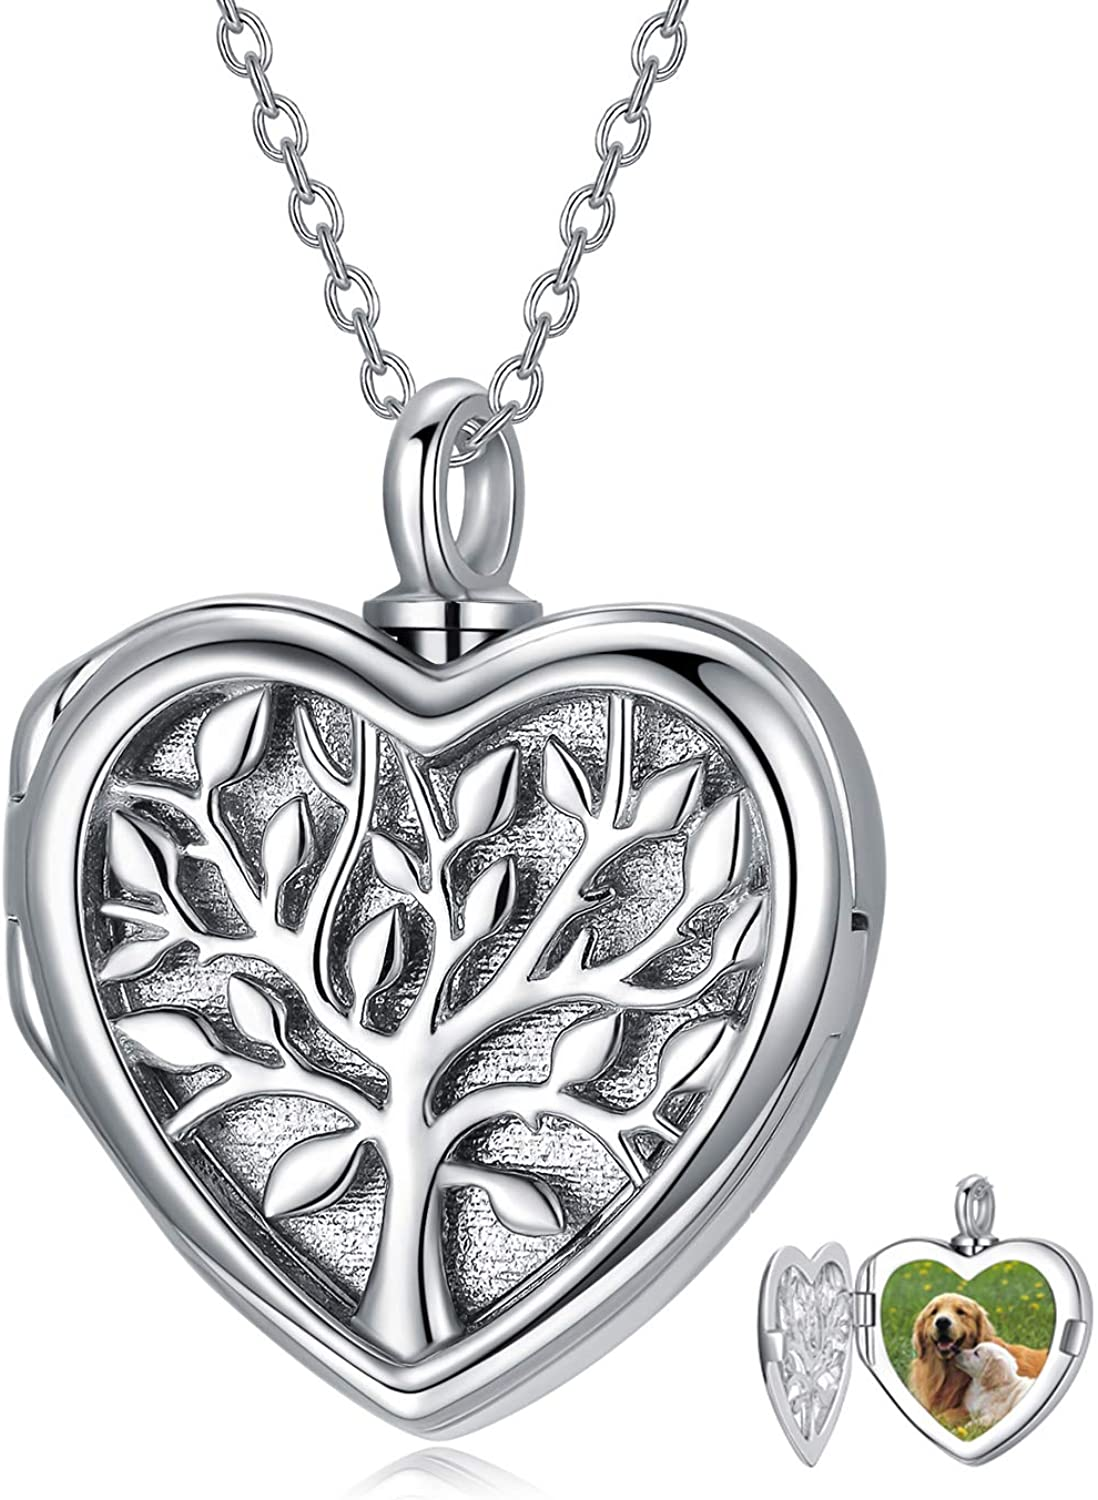 Heart Locket Necklace That Hold Pictures Hair Sterling Silver Personalized Photo Locket Pendant Necklace for Women Girls